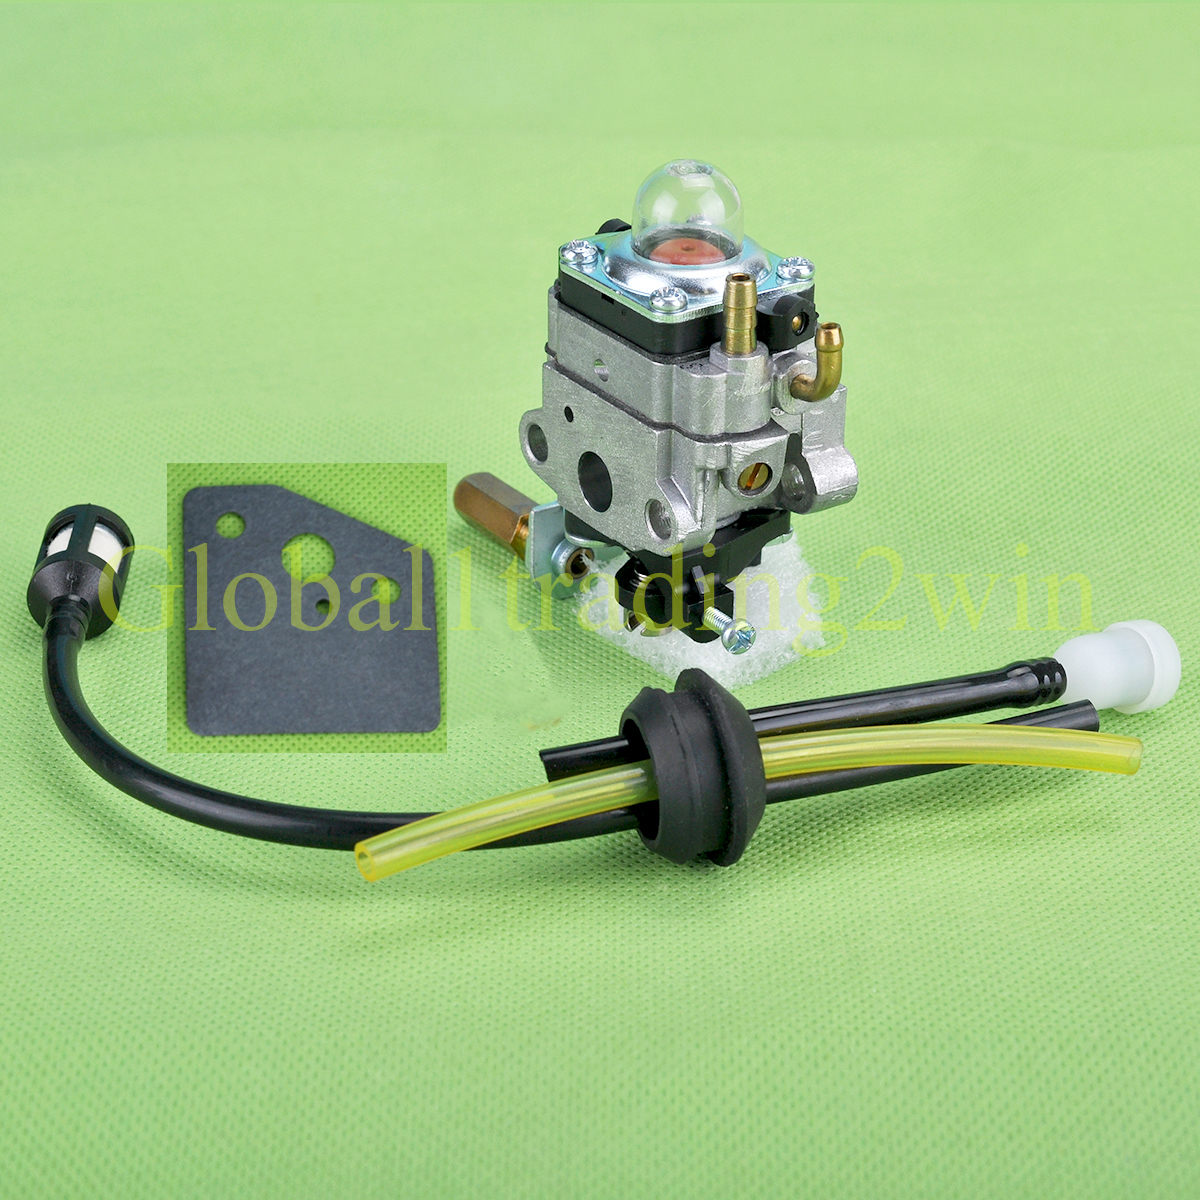 carburetor fuel line filter kit fit honda gx31 gx22 fg100. Black Bedroom Furniture Sets. Home Design Ideas